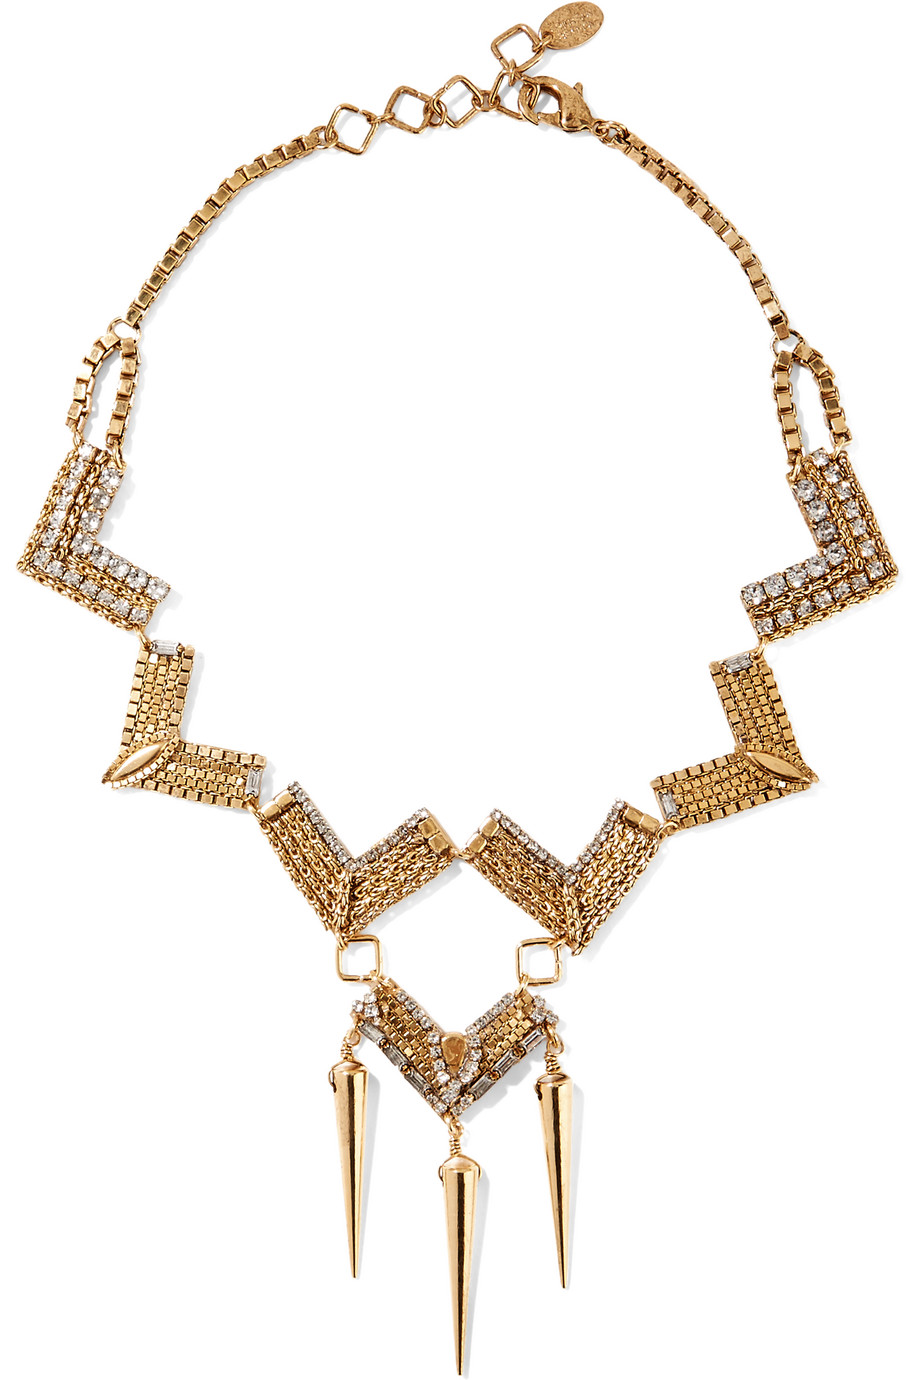 Erickson Beamon Awaken Gold-Plated Swarovski Crystal Necklace, Women's